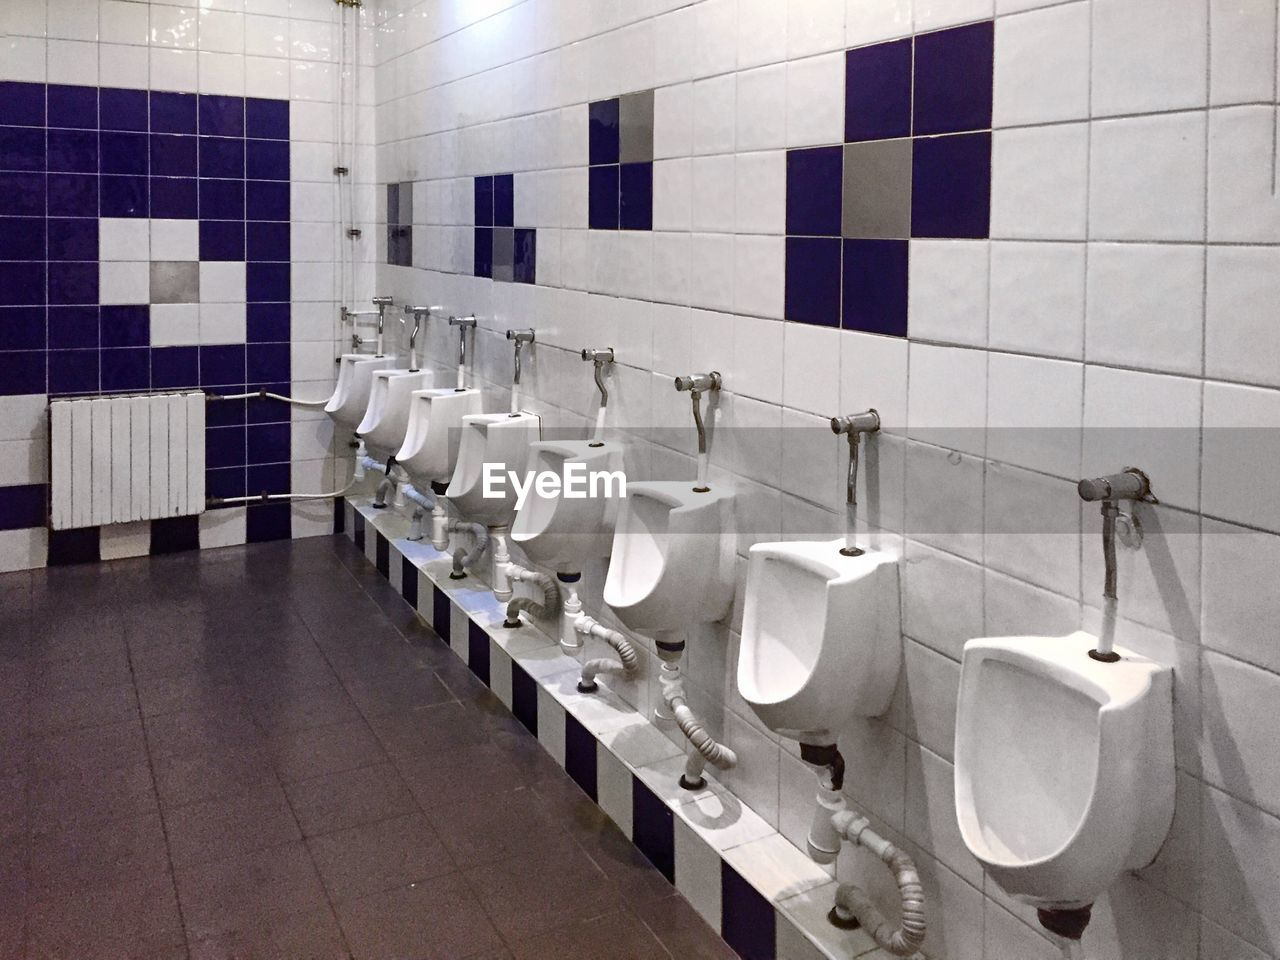 bathroom, tile, toilet, flooring, hygiene, indoors, public restroom, in a row, public building, urinal, white color, wall - building feature, domestic bathroom, tiled floor, absence, no people, repetition, domestic room, seat, convenience, clean